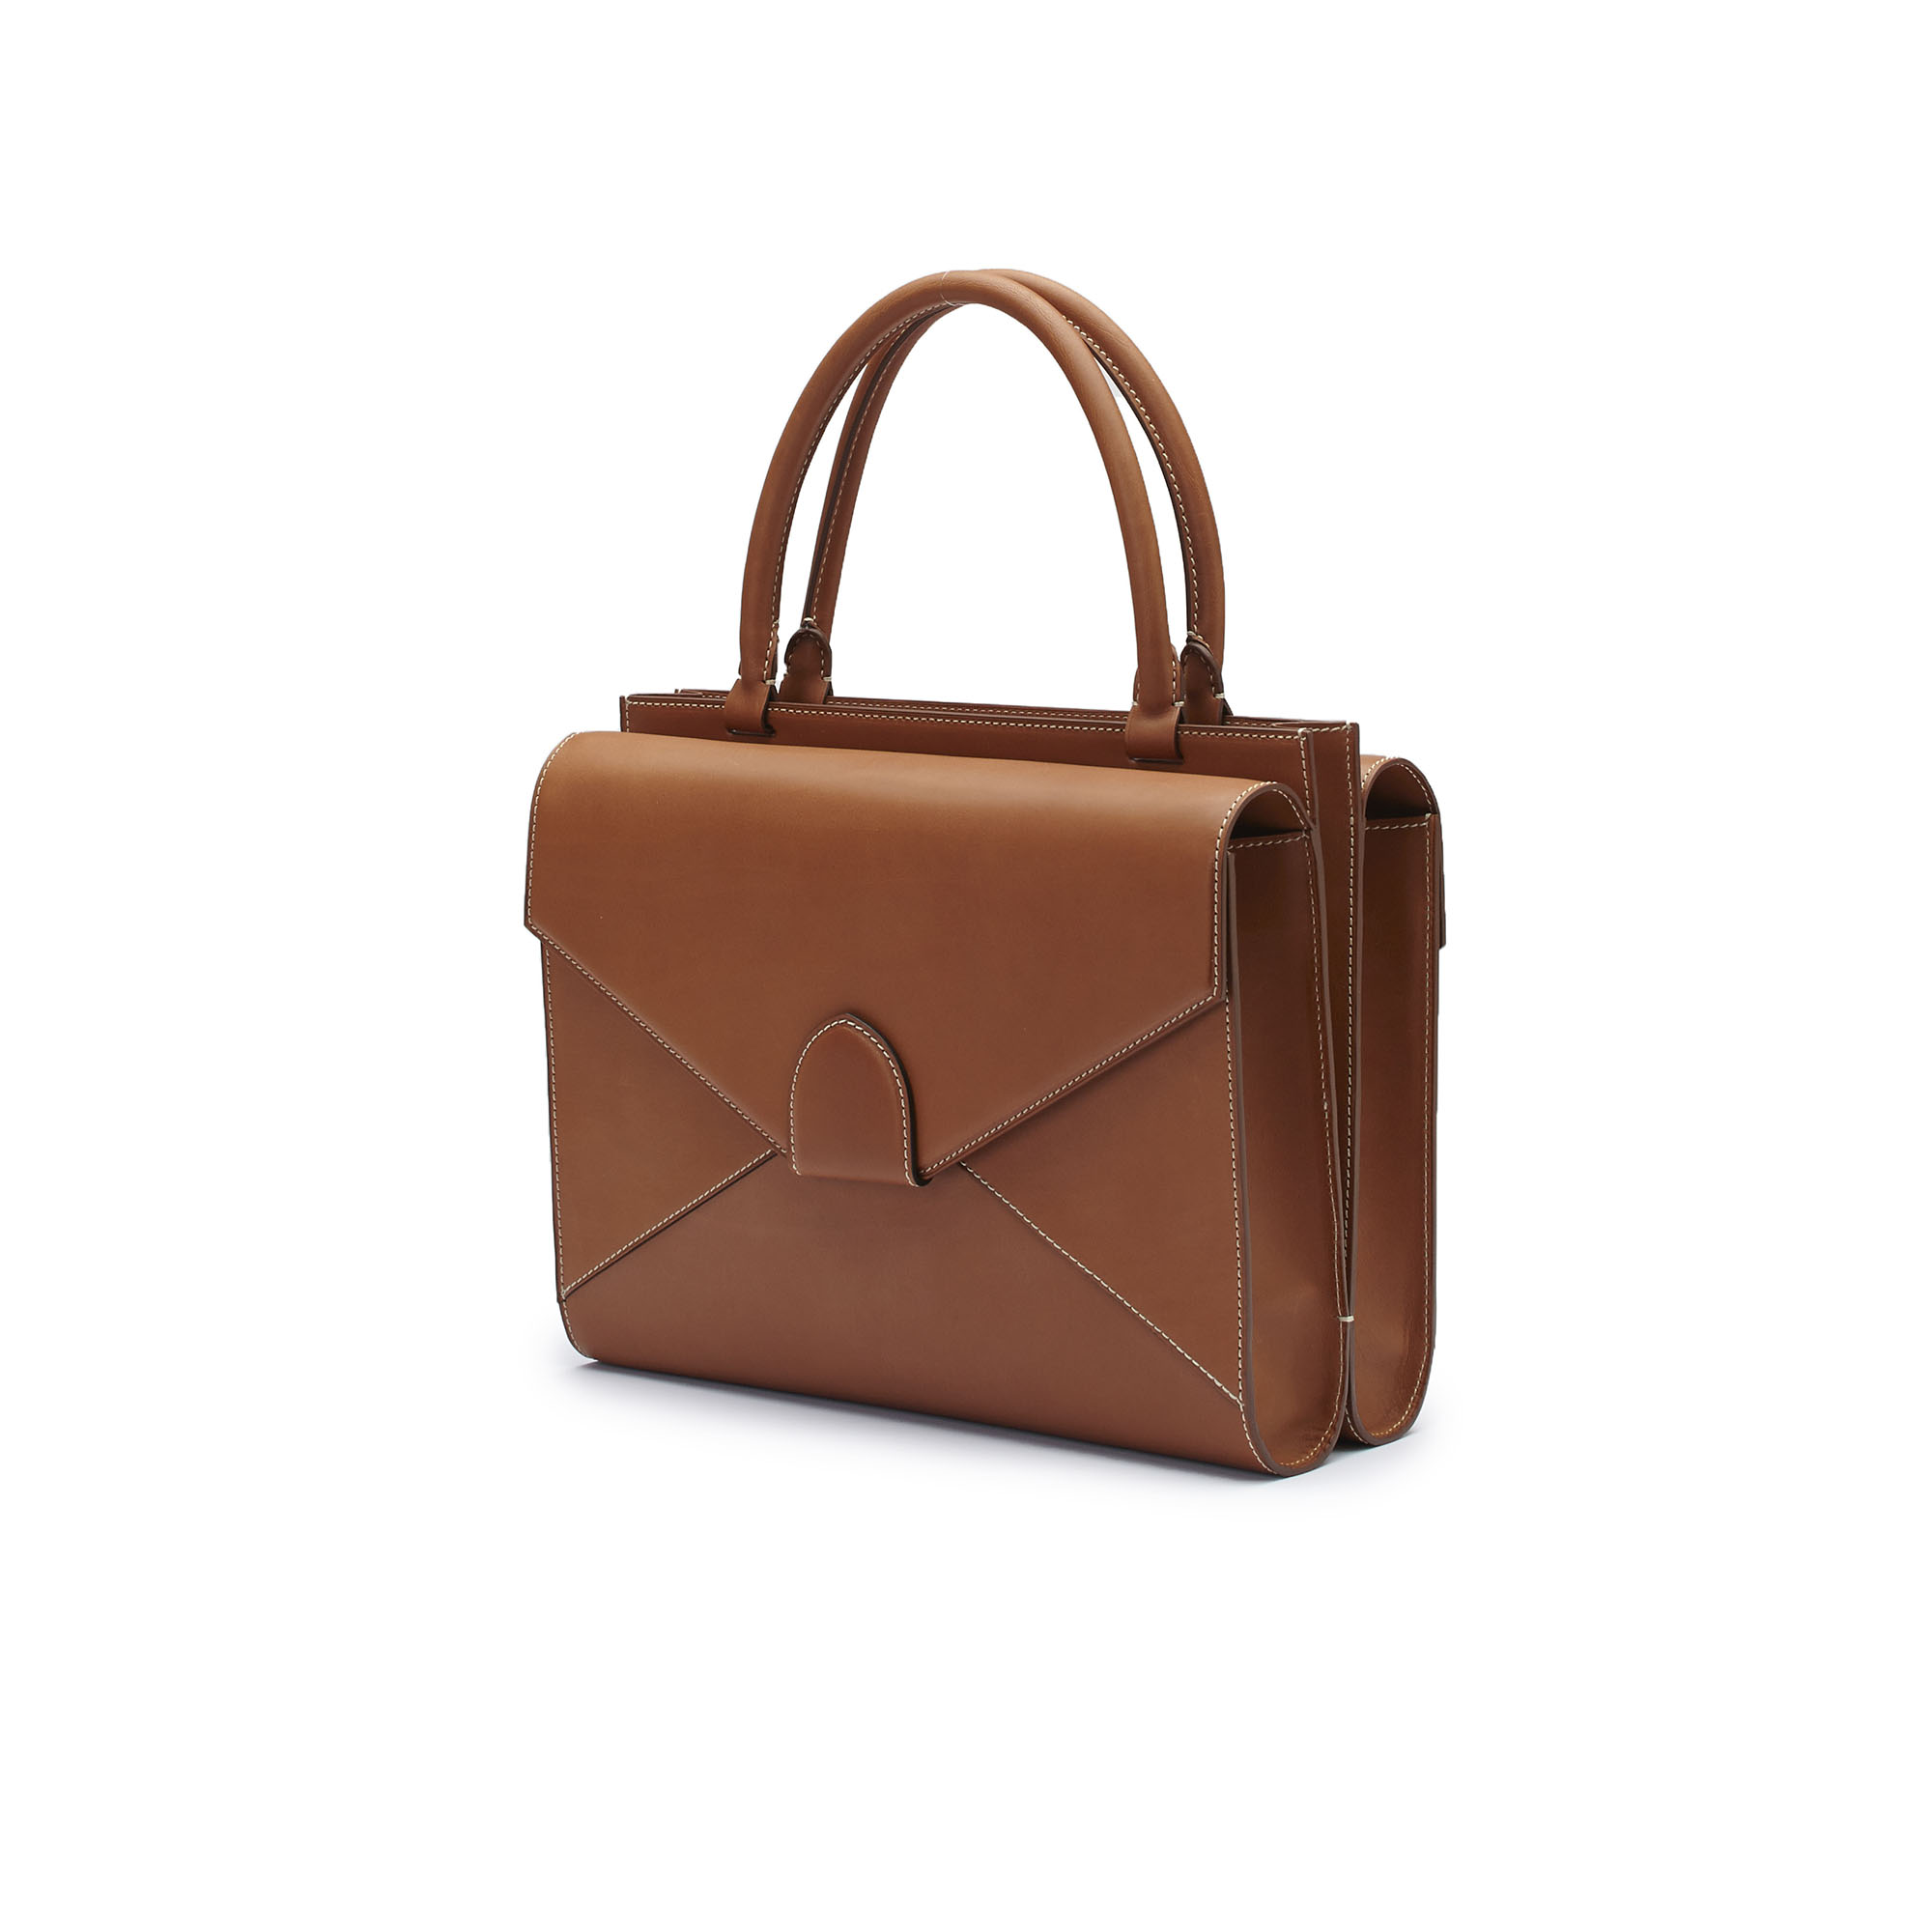 The cognac french calf Double Dafne bag by Bertoni 1949 02